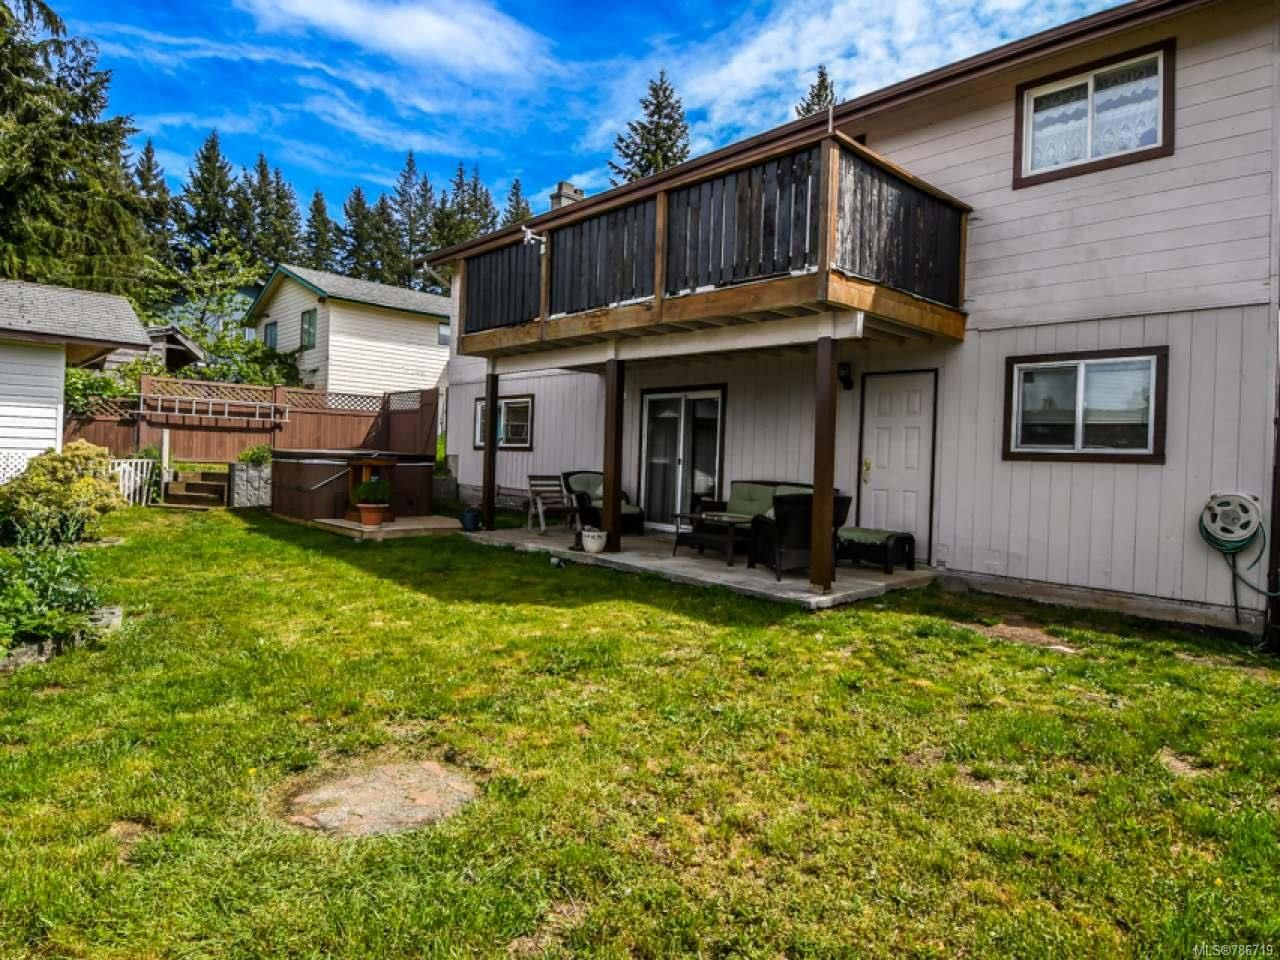 Photo 5: Photos: 1234 Denis Rd in CAMPBELL RIVER: CR Campbell River Central House for sale (Campbell River)  : MLS®# 786719